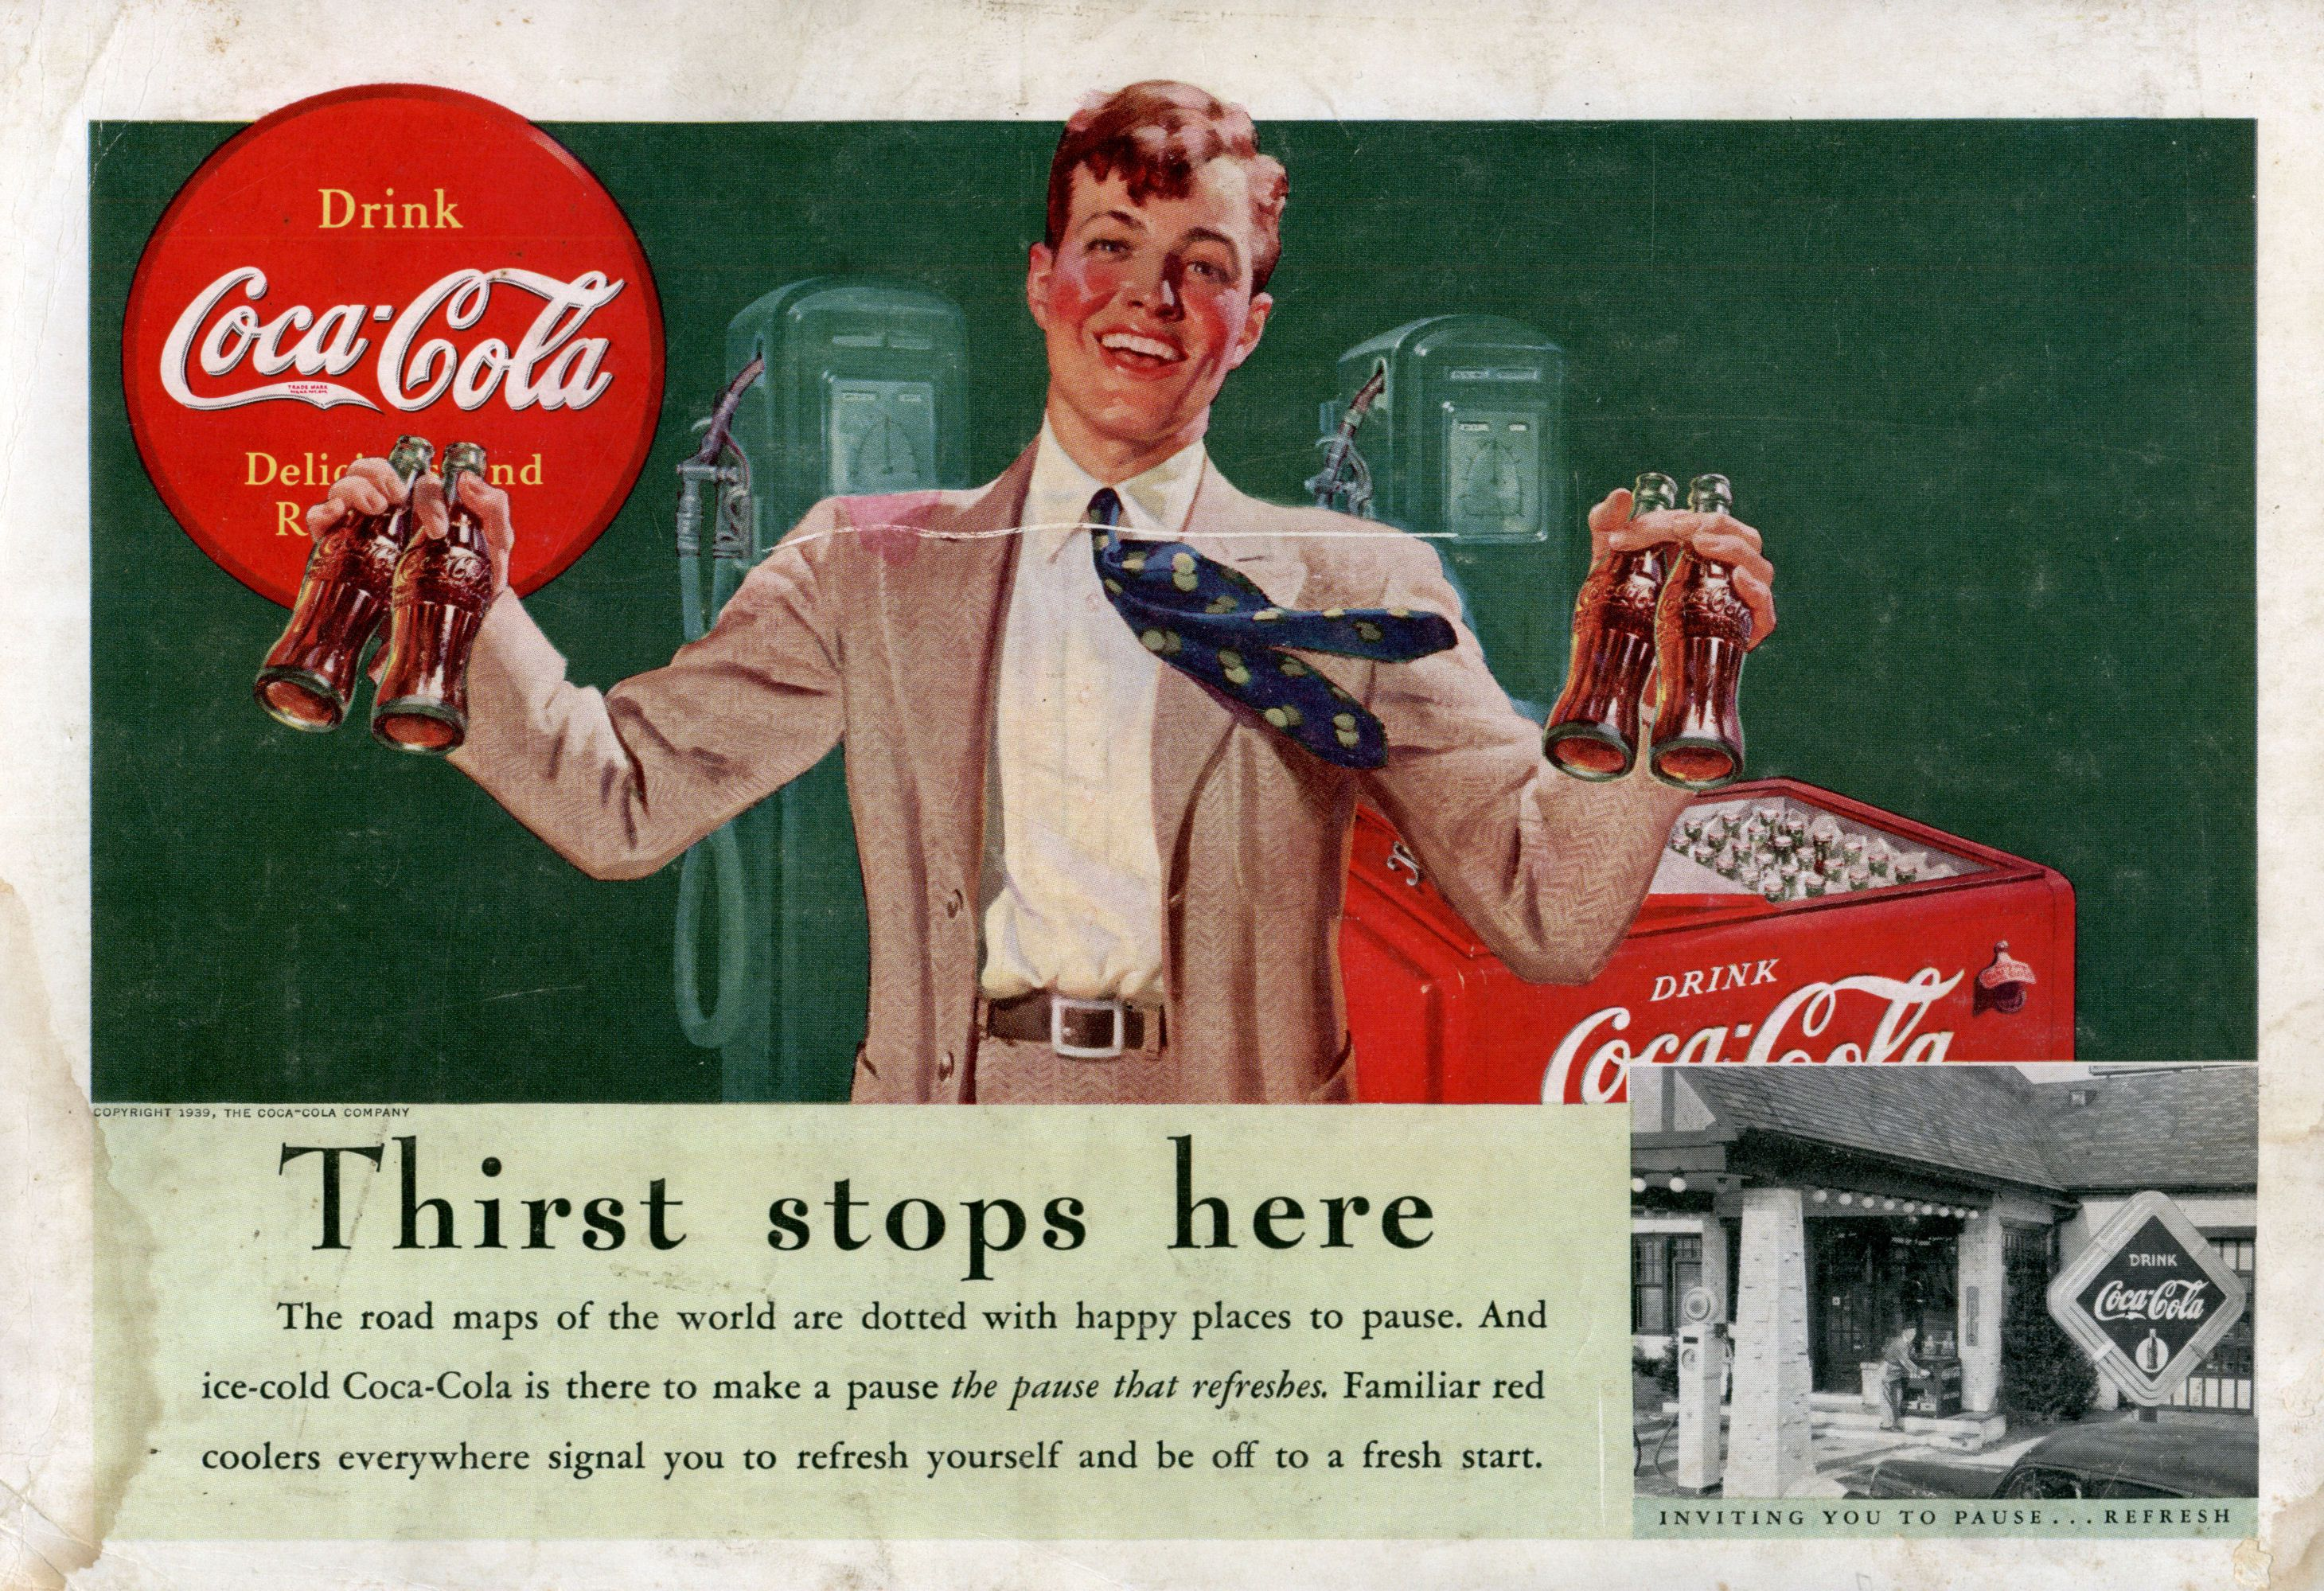 Thirst stops here  Coca-cola company | Vintage